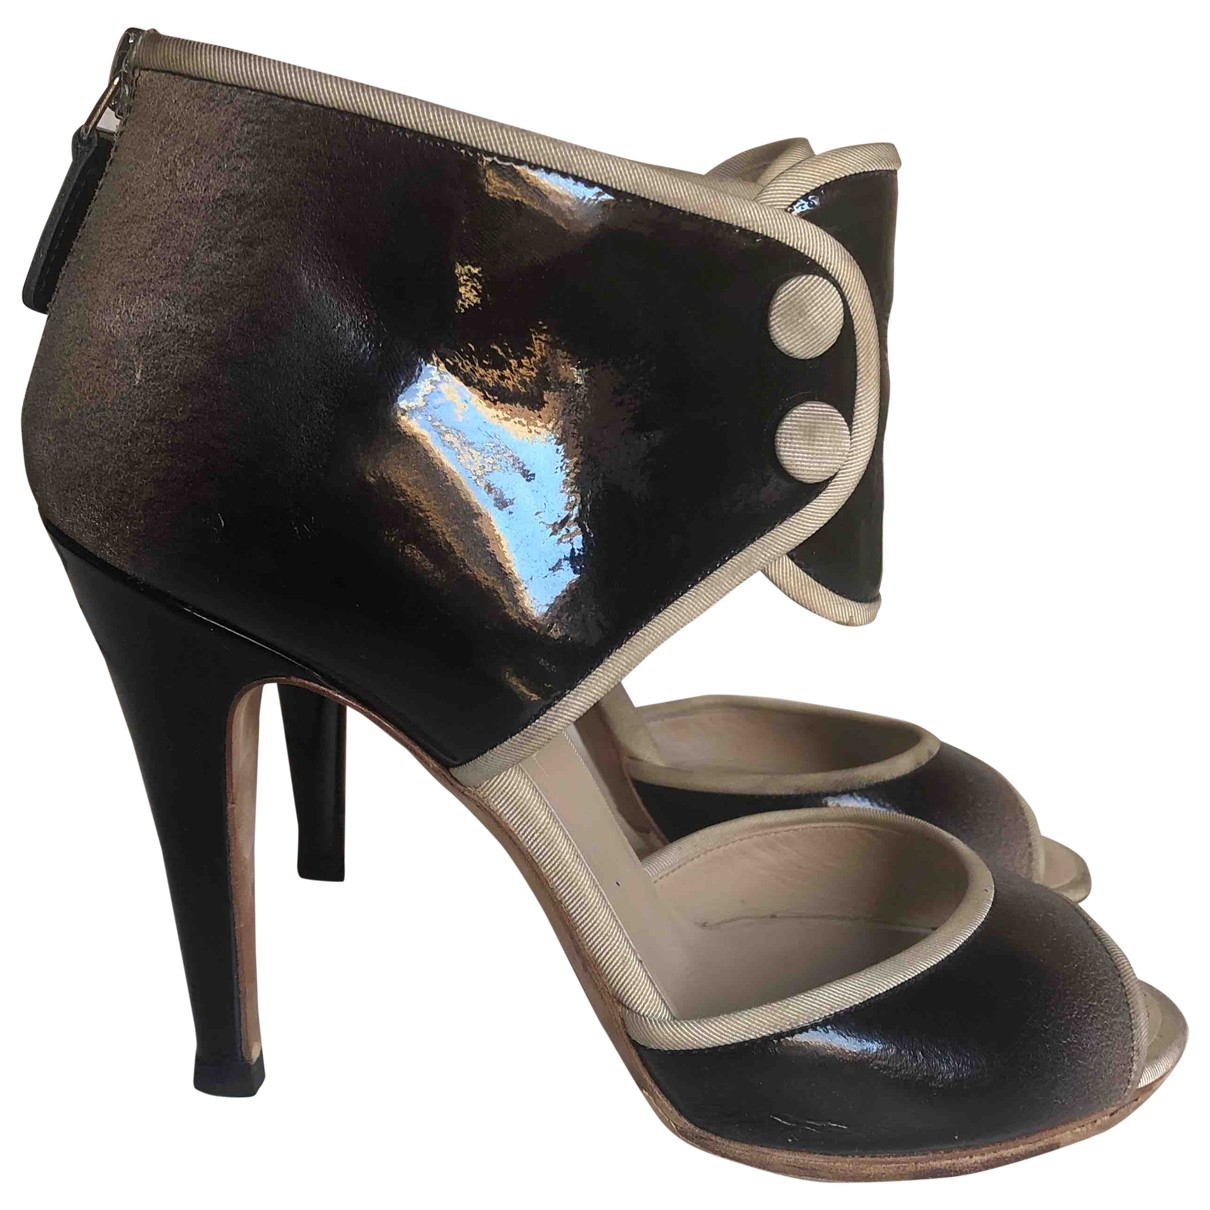 Chanel \N Grey Leather Sandals for Women 38 EU